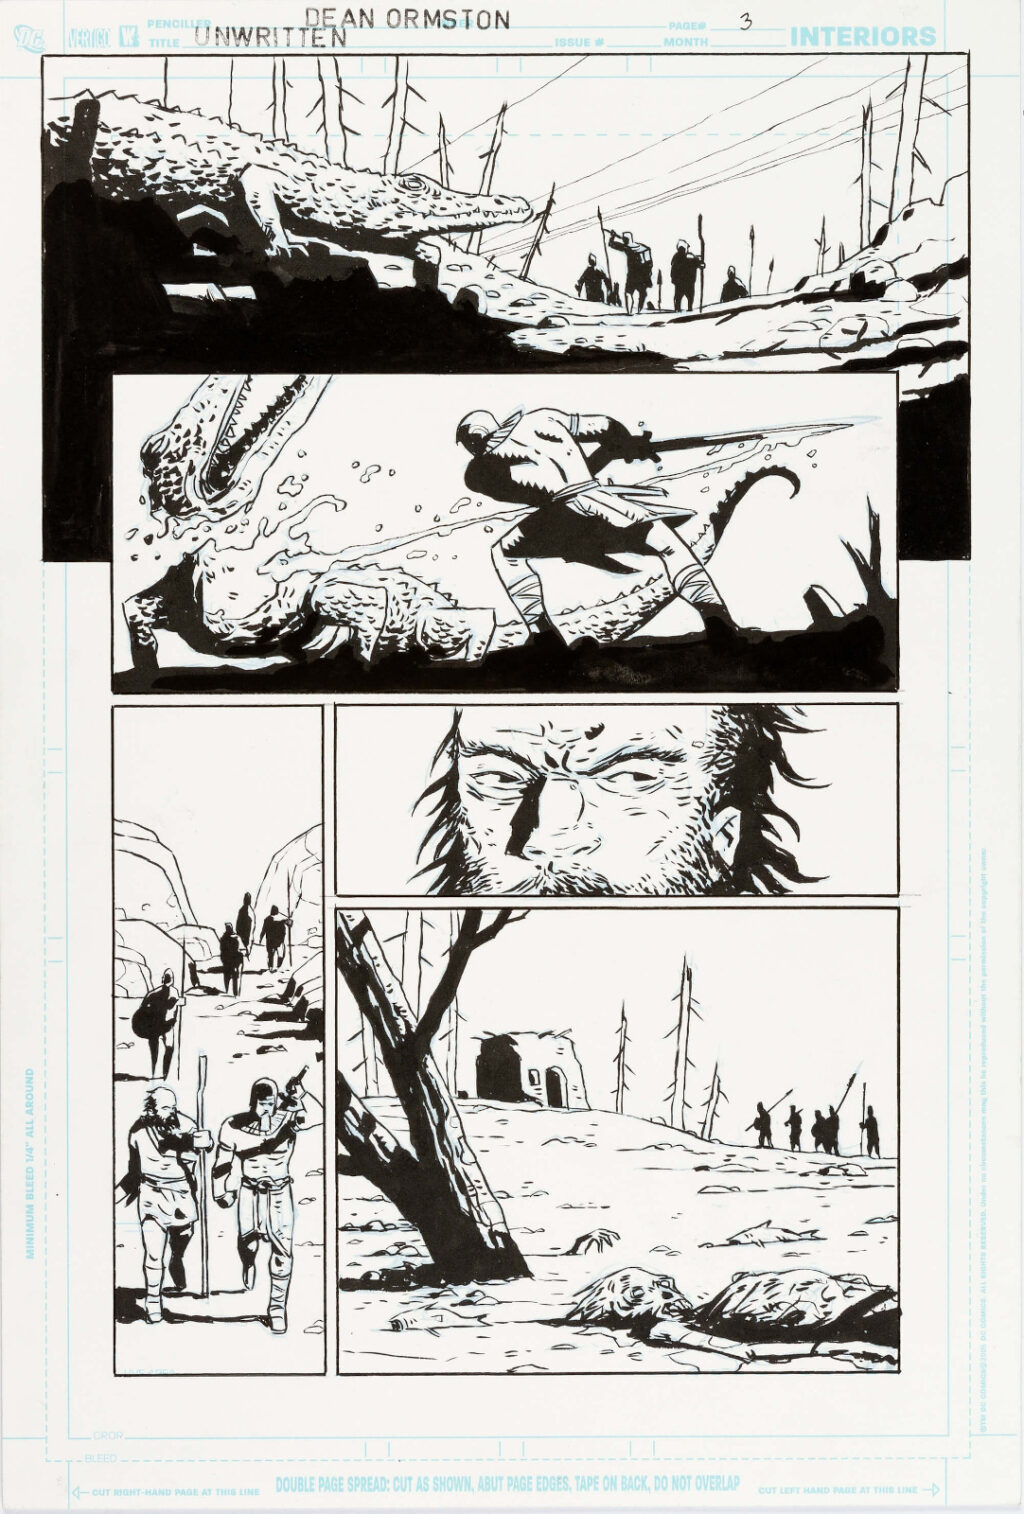 The Unwritten issue 32.5 page 3 by Peter Gross and Dean Ormston